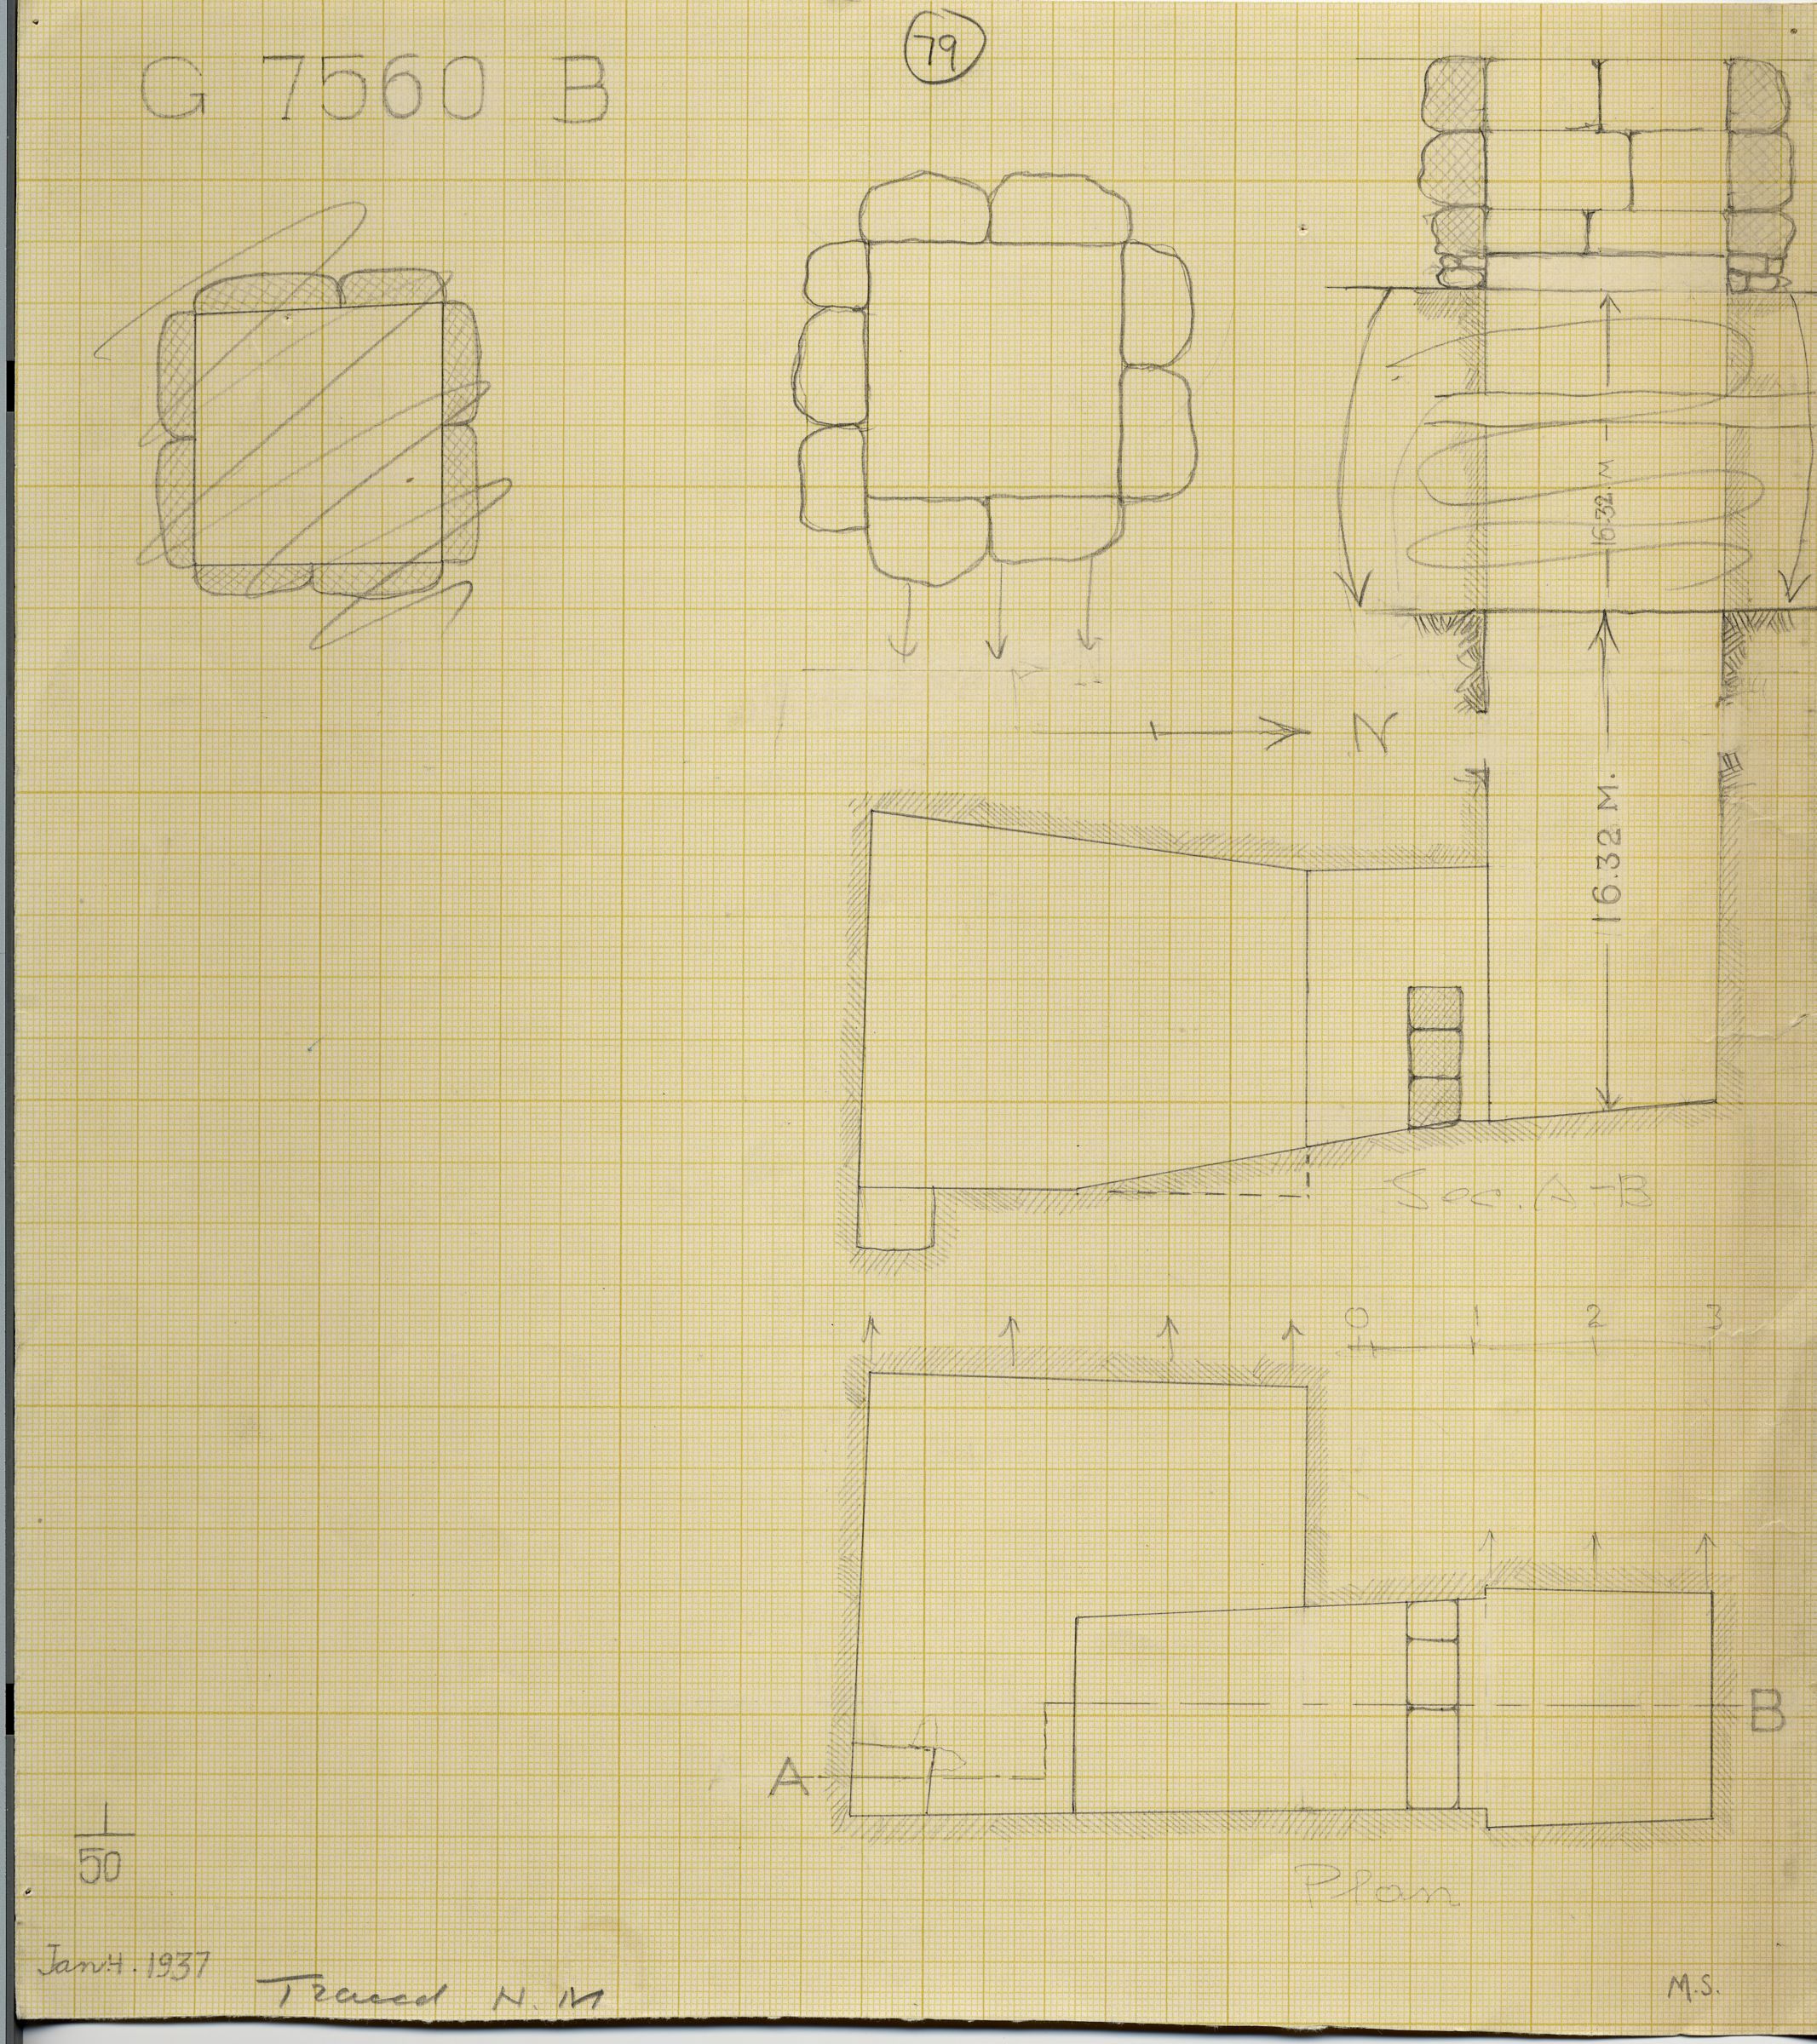 Maps and plans: G 7560, Shaft B